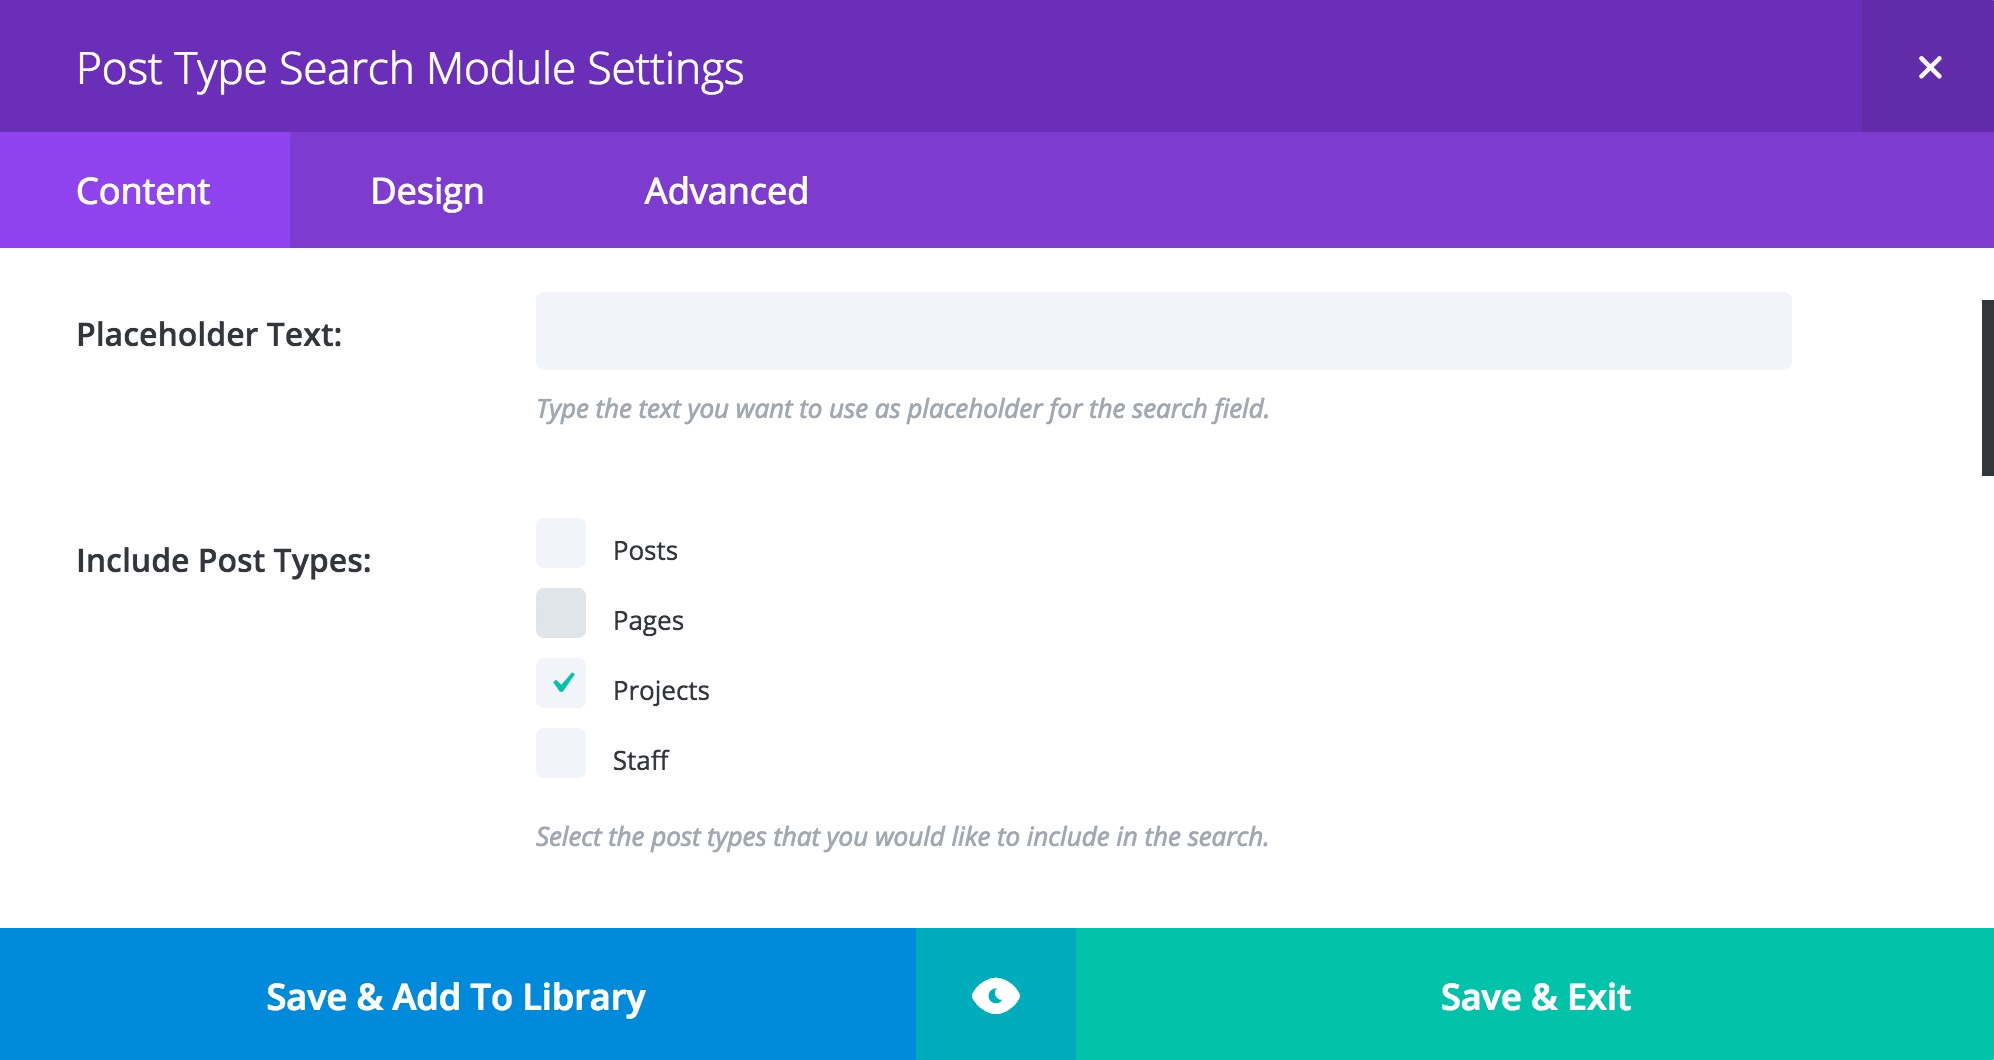 Post Type Search Module Settings with Projects Selected